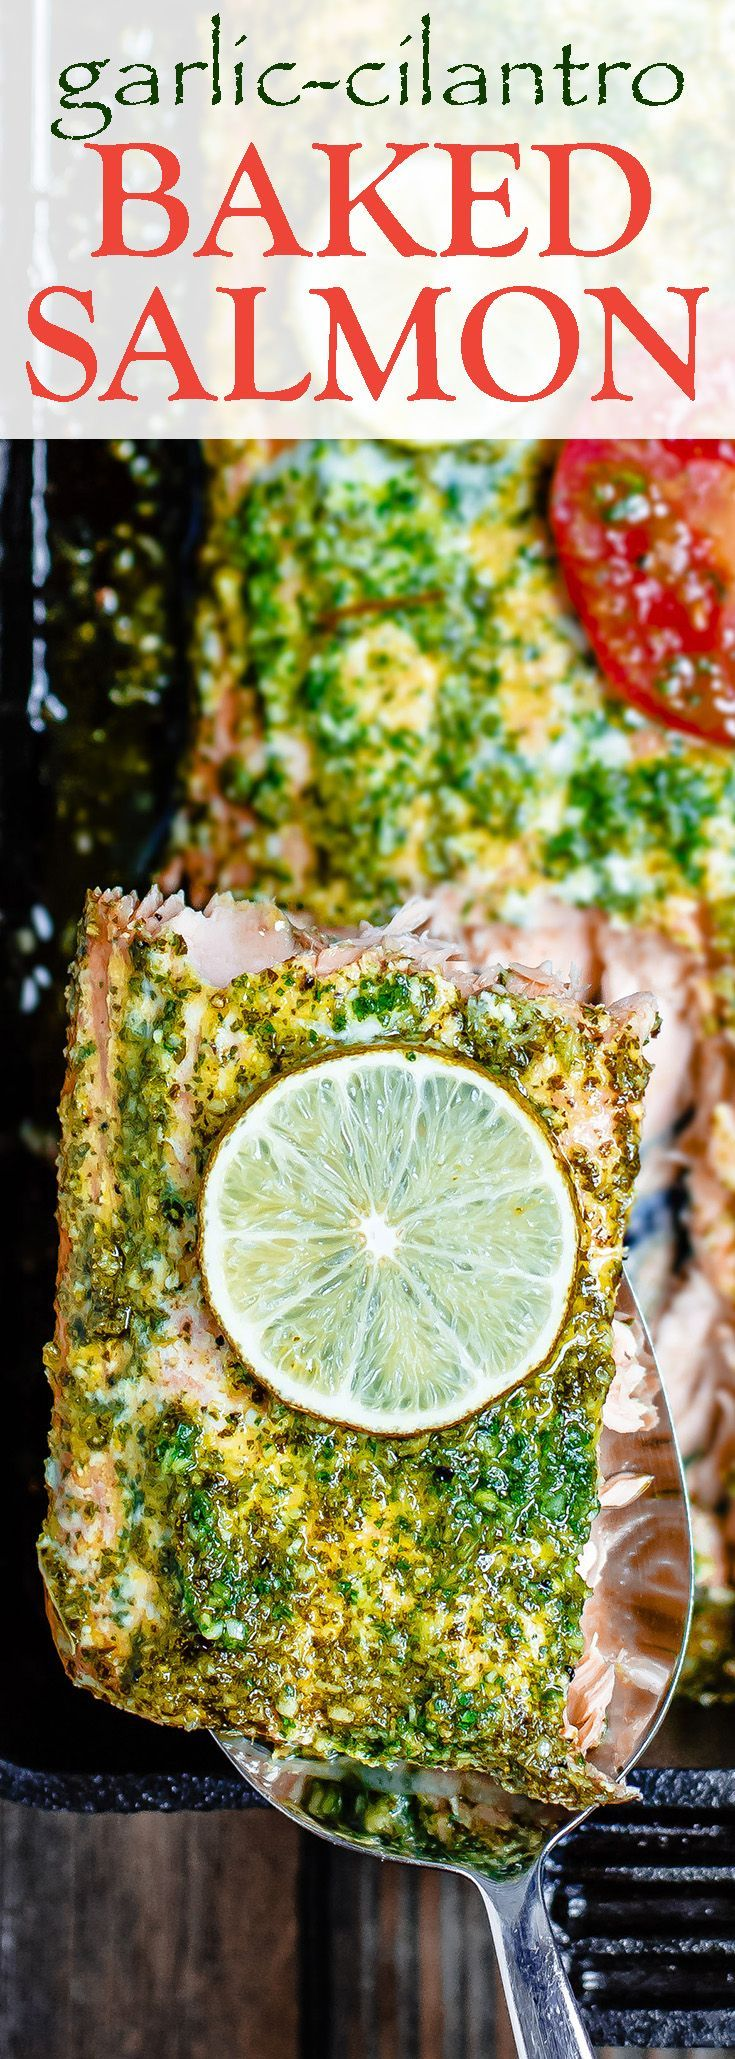 Baked Salmon Recipe with Garlic Cilantro Sauce | The Mediterranean Dish. An easy baked salmon covered in a special garlic cilantro sauce with a hint of citrus. Takes only 15 minutes start-to-finish! I make this one all the time, for weeknight dinner or a holiday dinner! See it on TheMediterraneanDish.com